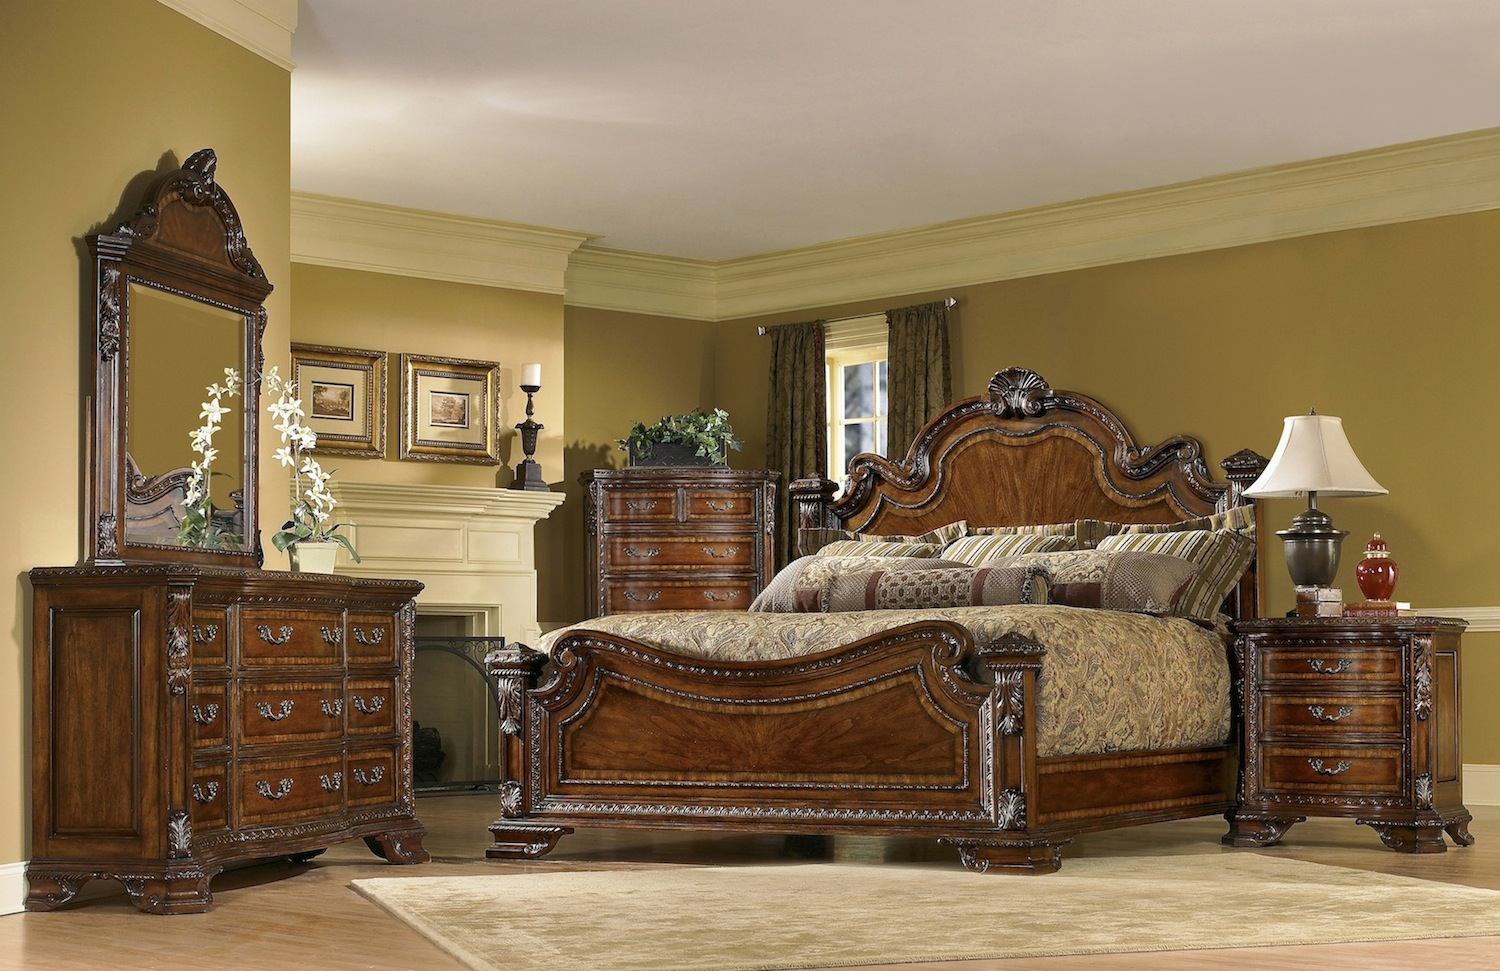 old world 6 piece king traditional european style bedroom 14419 | old world bedroom set 143000